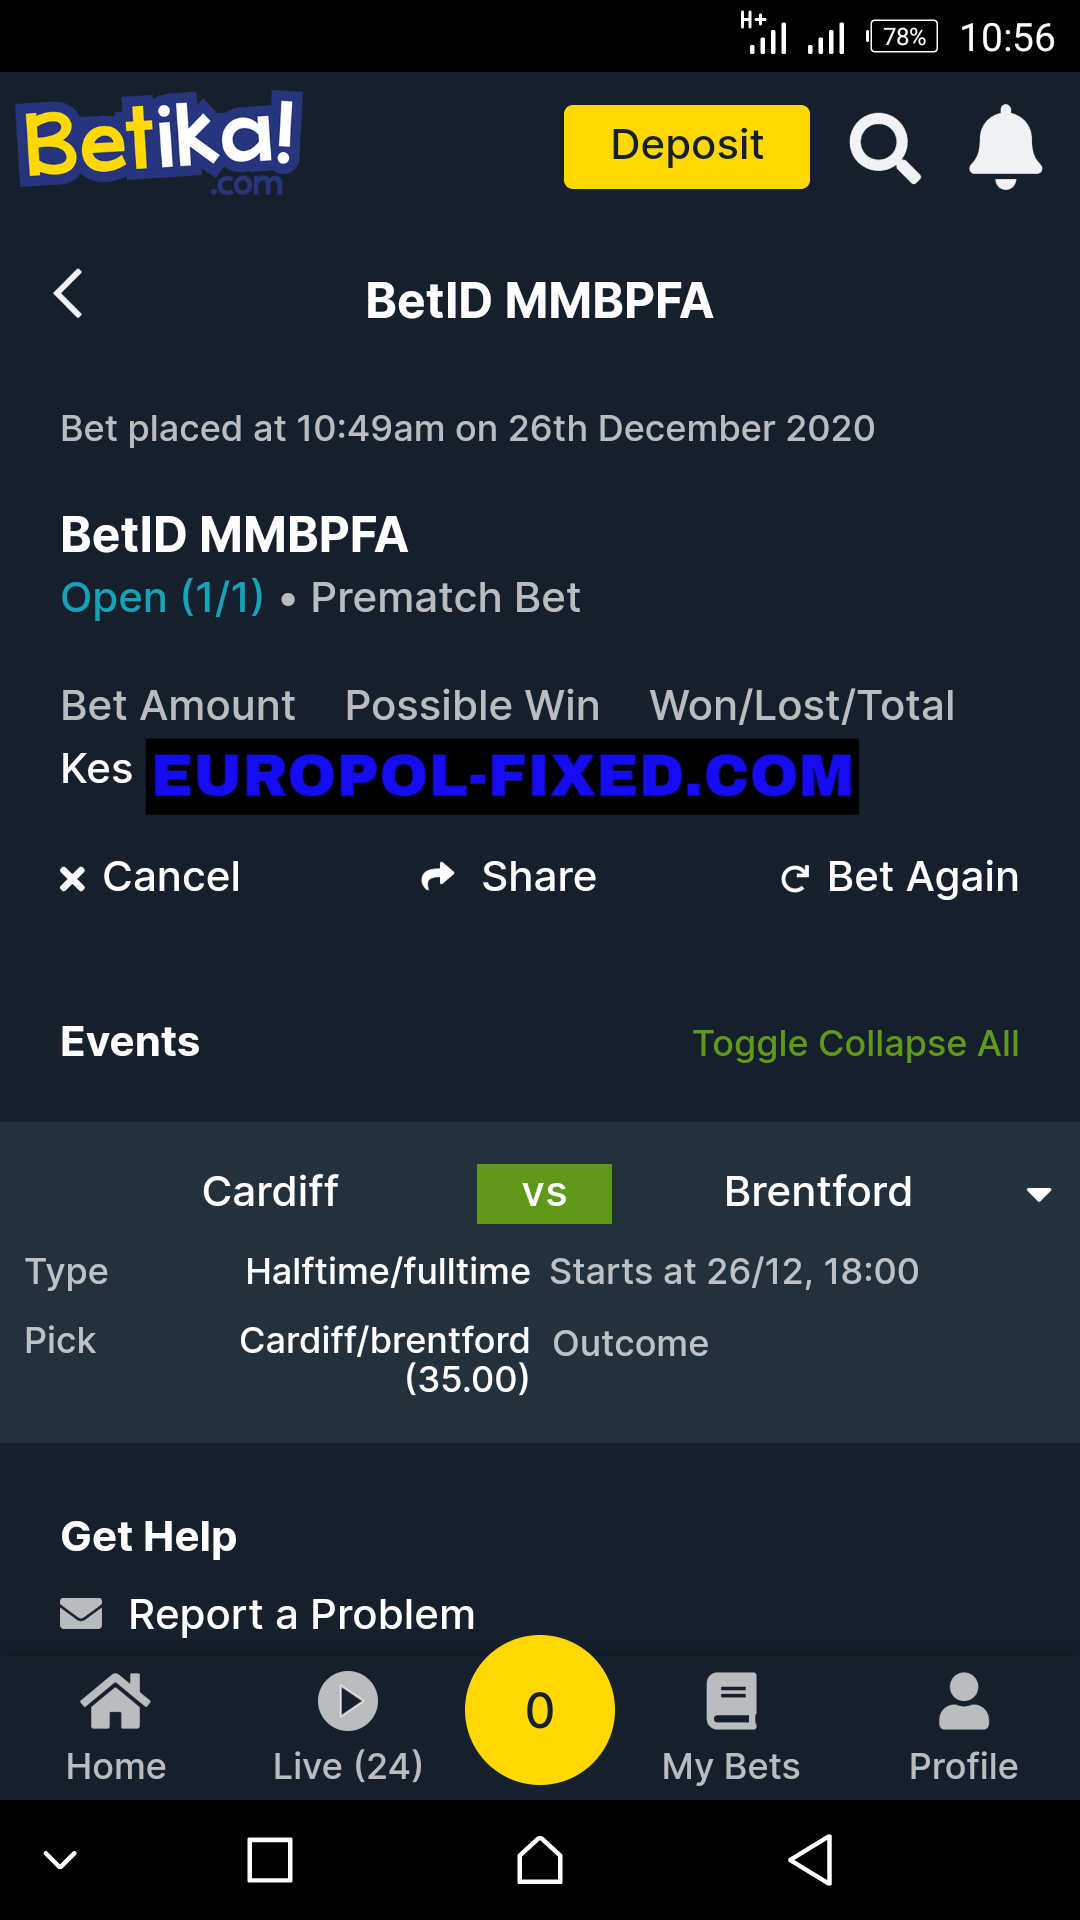 FIXED MATCHES HT FT WINNING GAMES